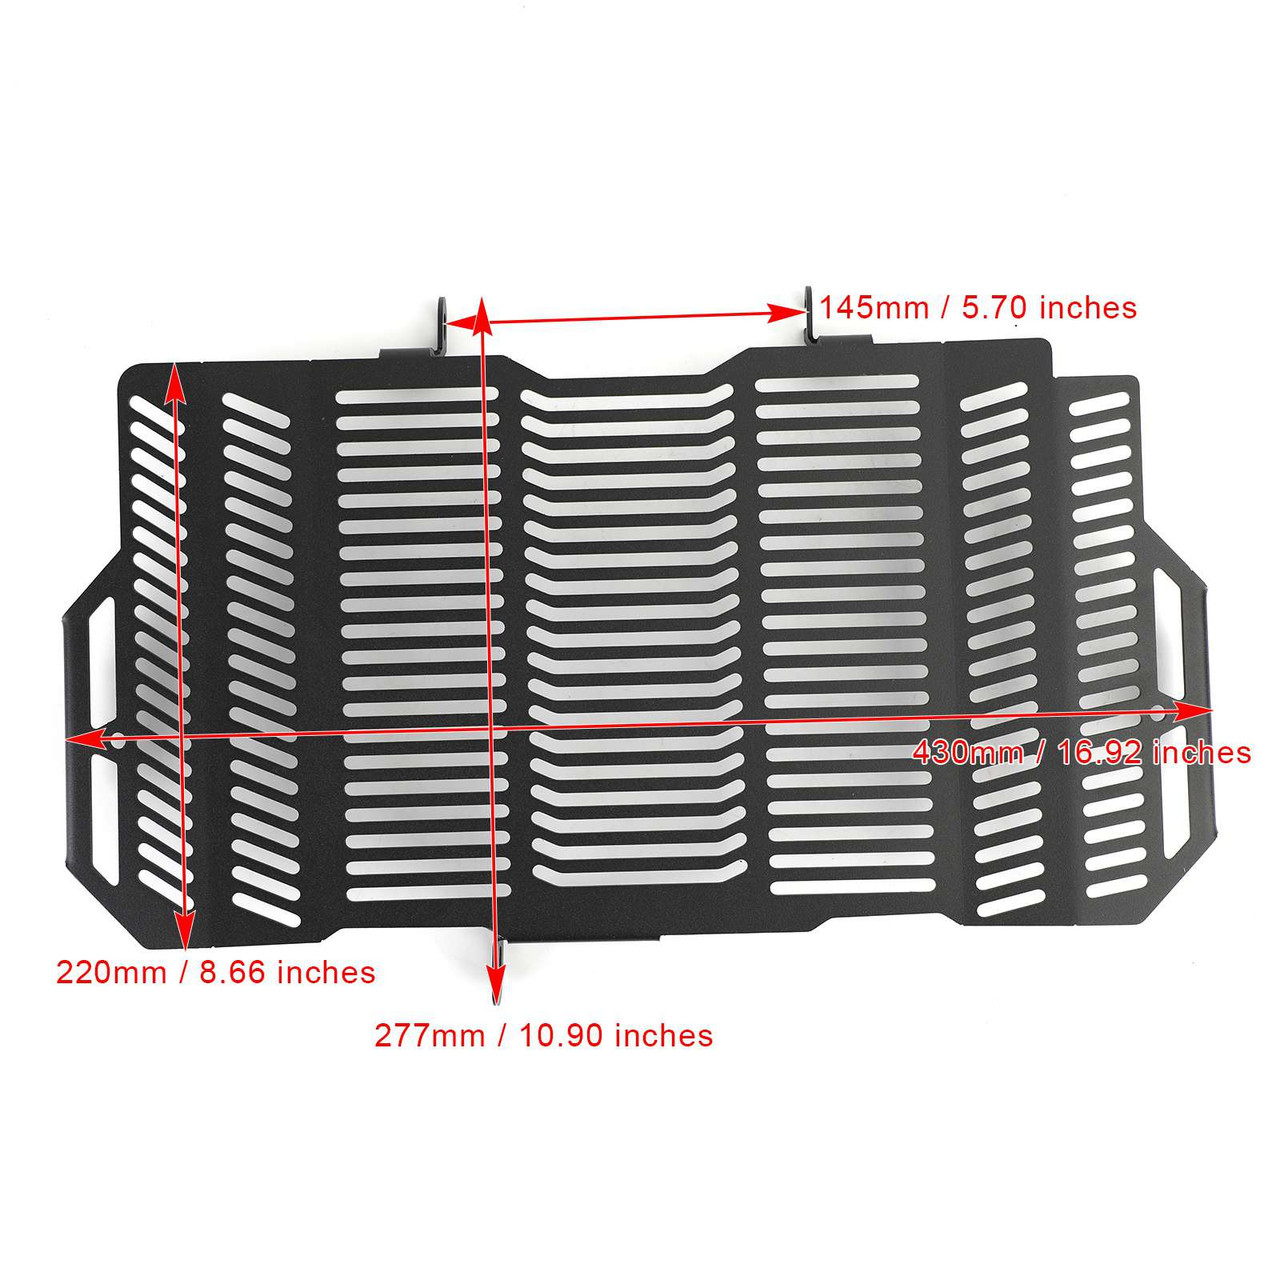 Stainless Steel Radiator Guard Protector Grill Cover Fit For Honda CB650R Neo Sports Cafe CBR650R 19-21 Black